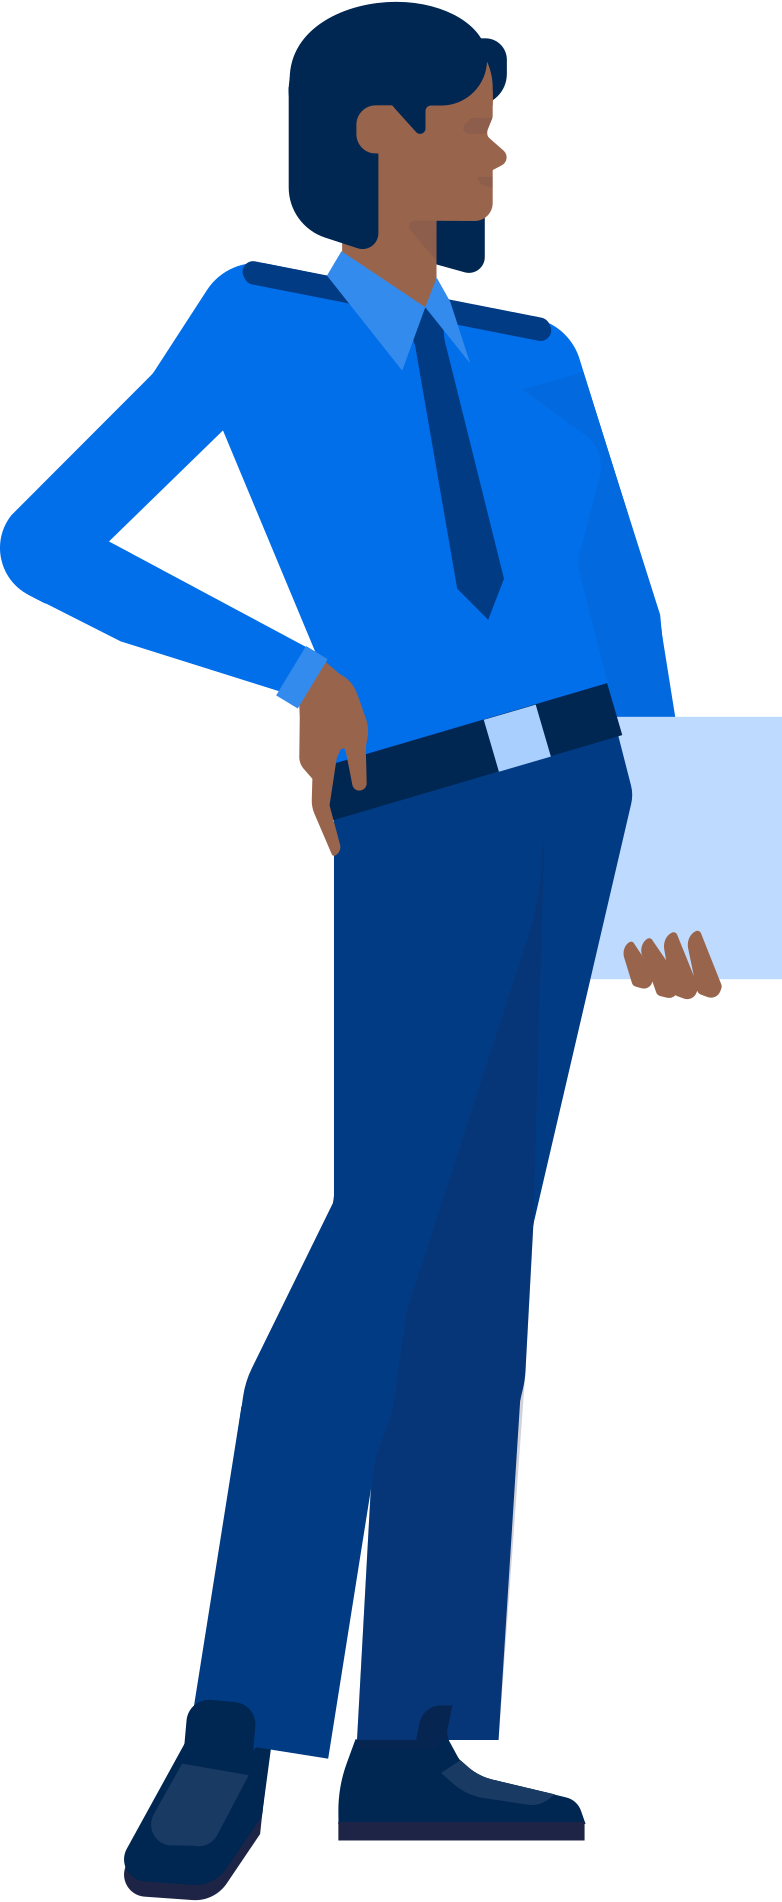 style police woman Vector images in PNG and SVG | Icons8 Illustrations